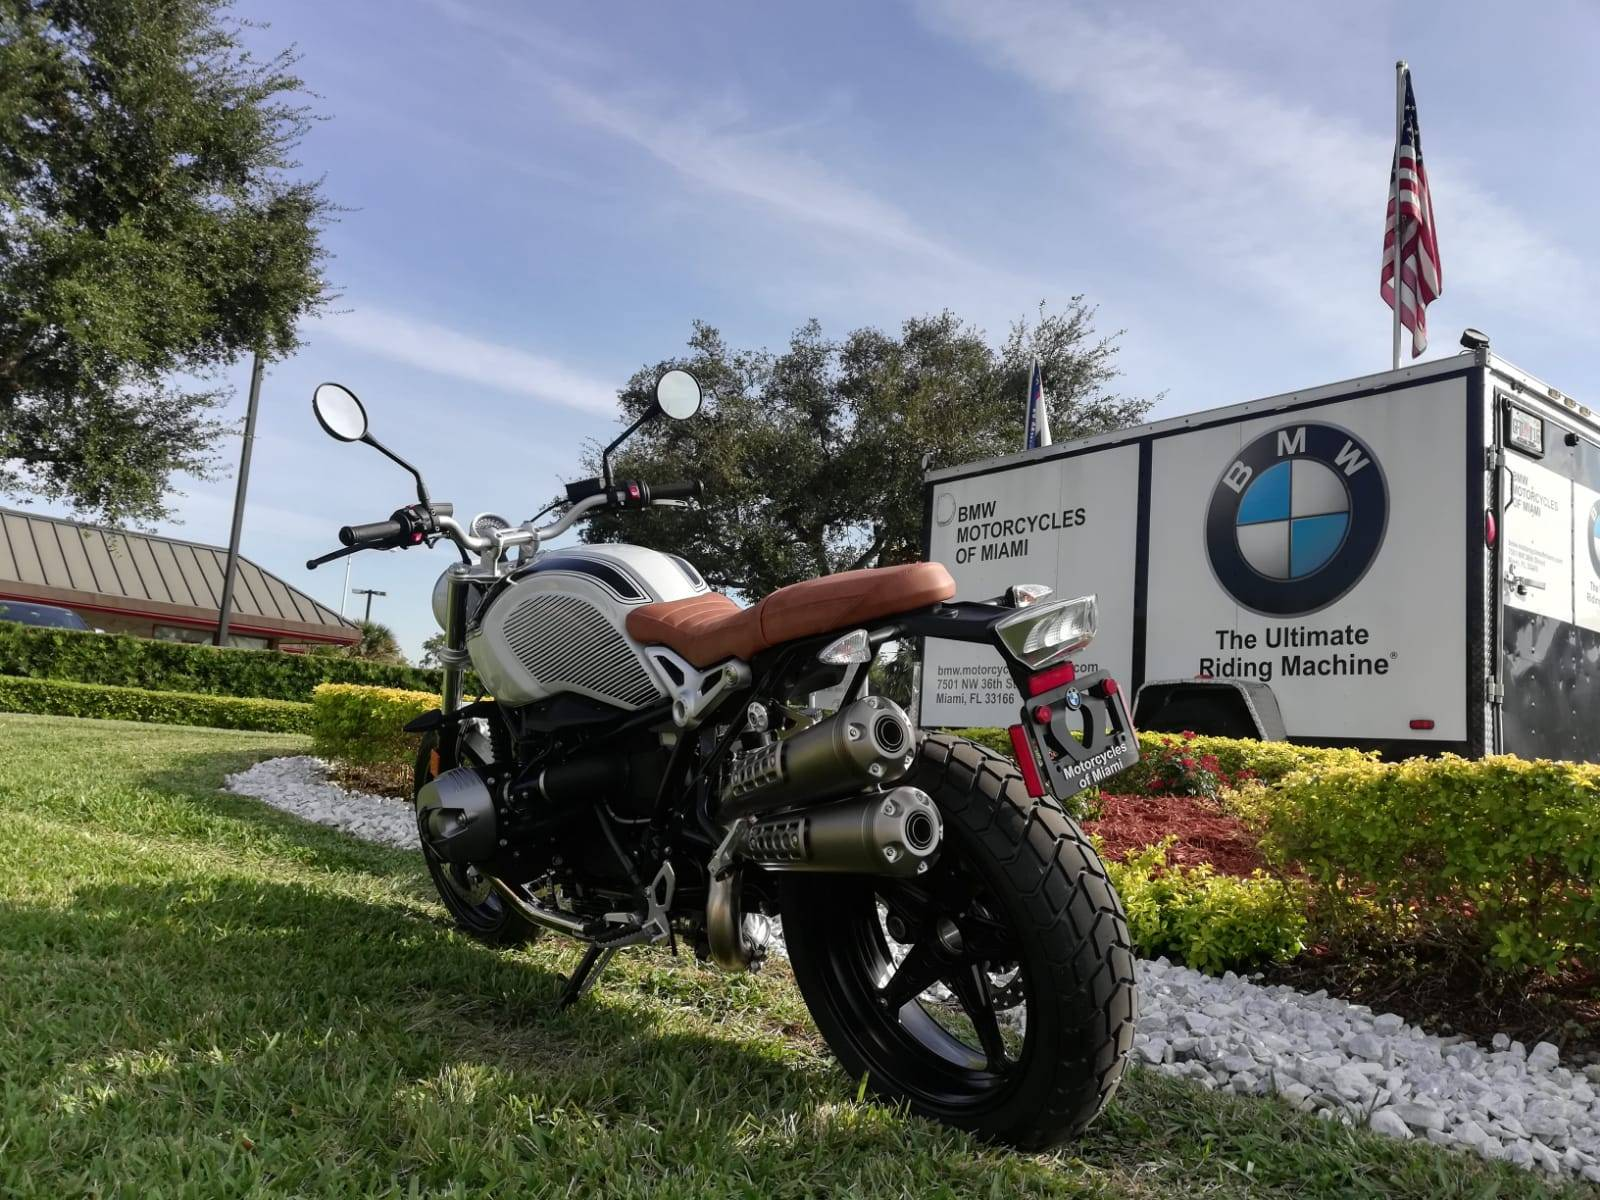 New 2019 BMW R nine T Scrambler for sale, BMW Scrambler for sale, BMW Motorcycle Scrambler, Scrambler, BMW Motorcycles of Miami, Motorcycles of Miami, Motorcycles Miami, New Motorcycles, Used Motorcycles, pre-owned. #BMWMotorcyclesOfMiami #MotorcyclesOfMiami. - Photo 7